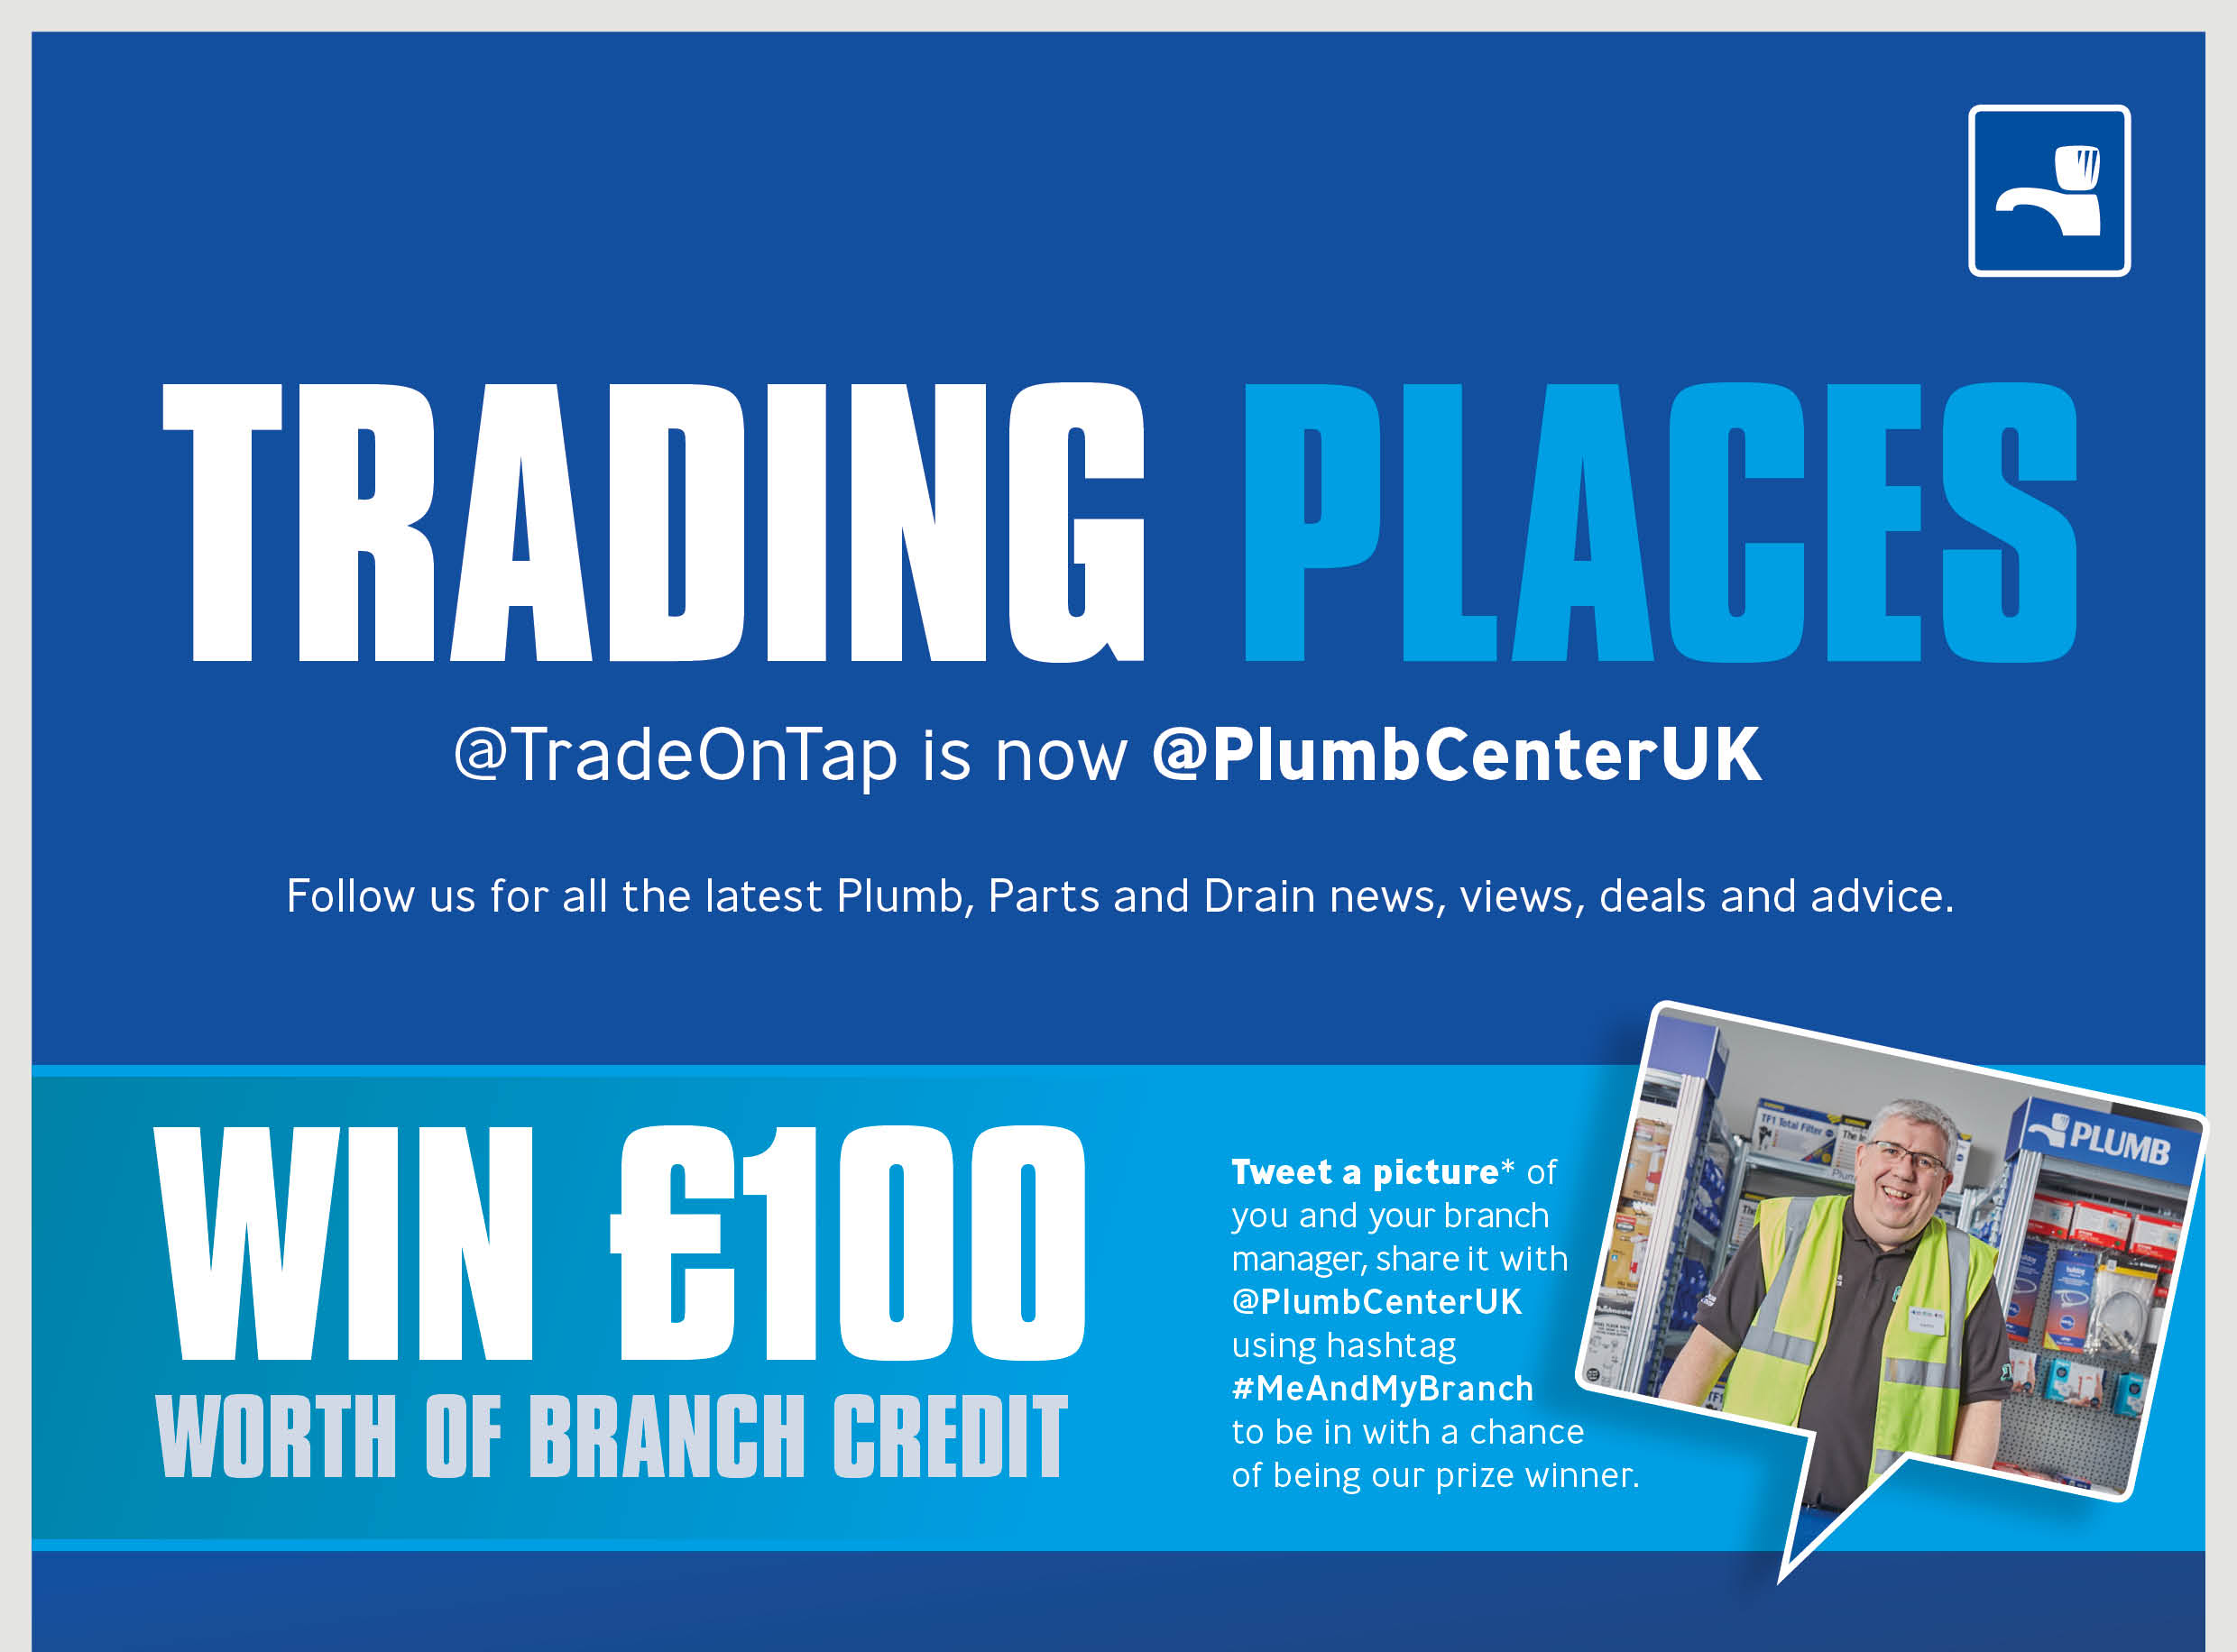 New social media image for Plumb and Parts Center